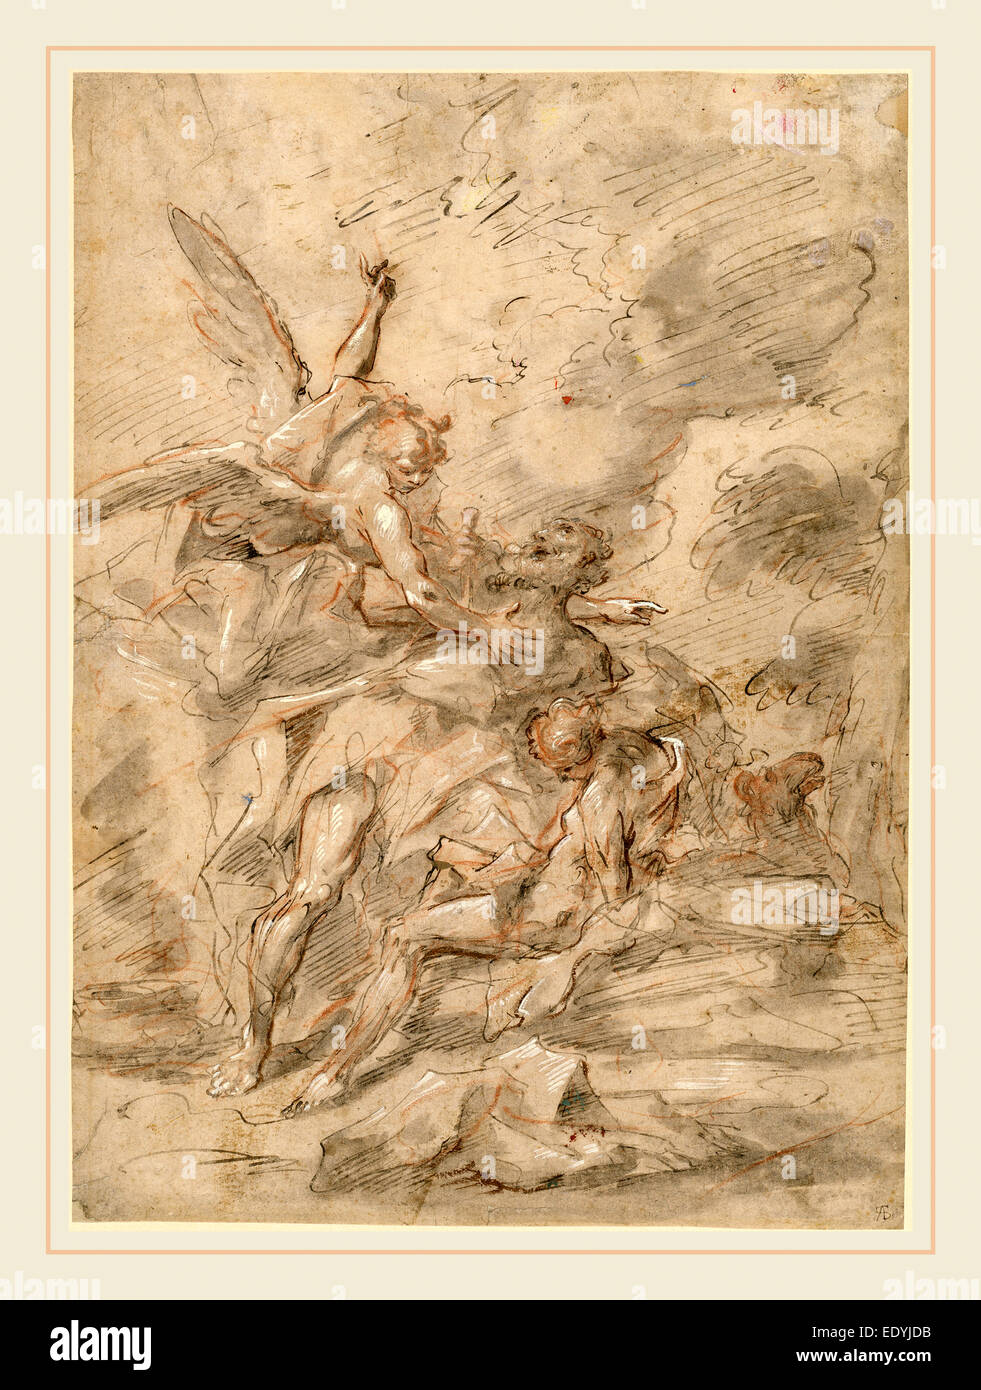 Gaspare Diziani, Italian (1689-1767), The Sacrifice of Isaac, 1750-1755, pen and gray and brown ink with gray wash - Stock Image